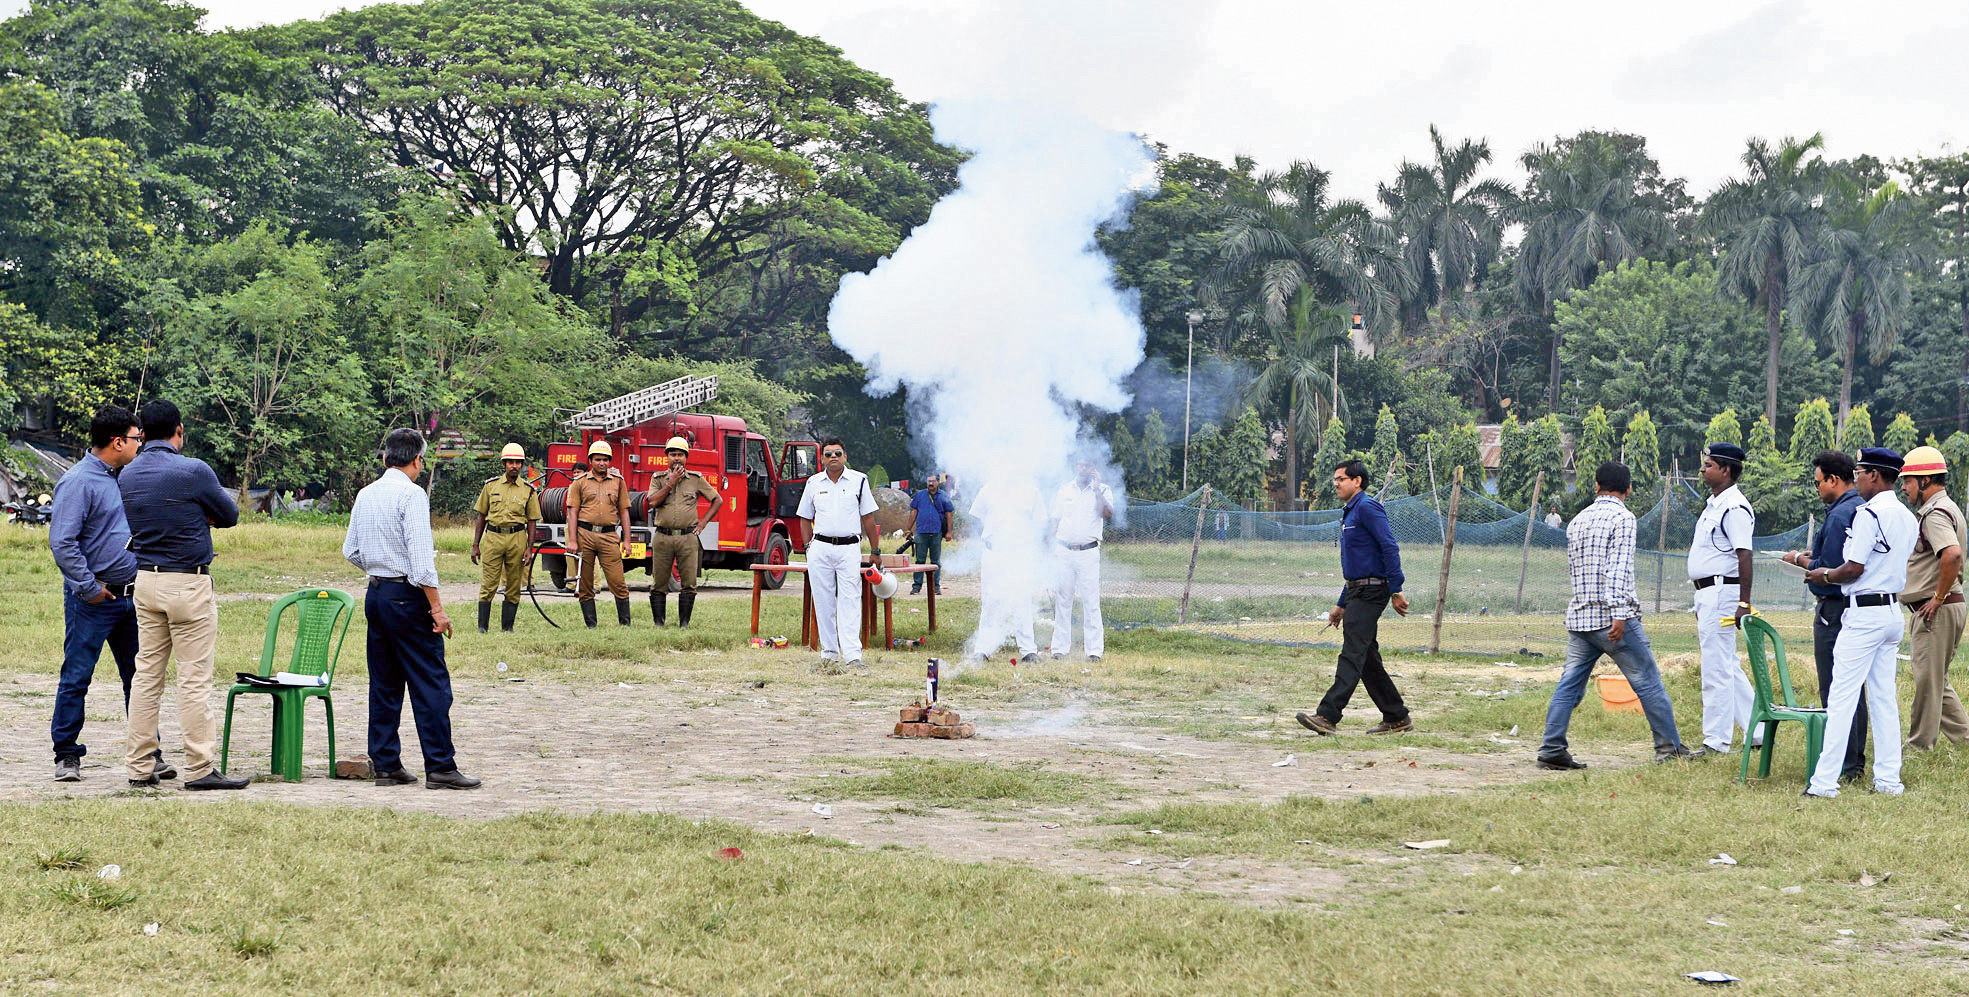 State pollution control board and Petroleum and Explosives Safety Organisation officials, along with police and fire officers and firecracker traders, during the test in Tallah Park on Monday.